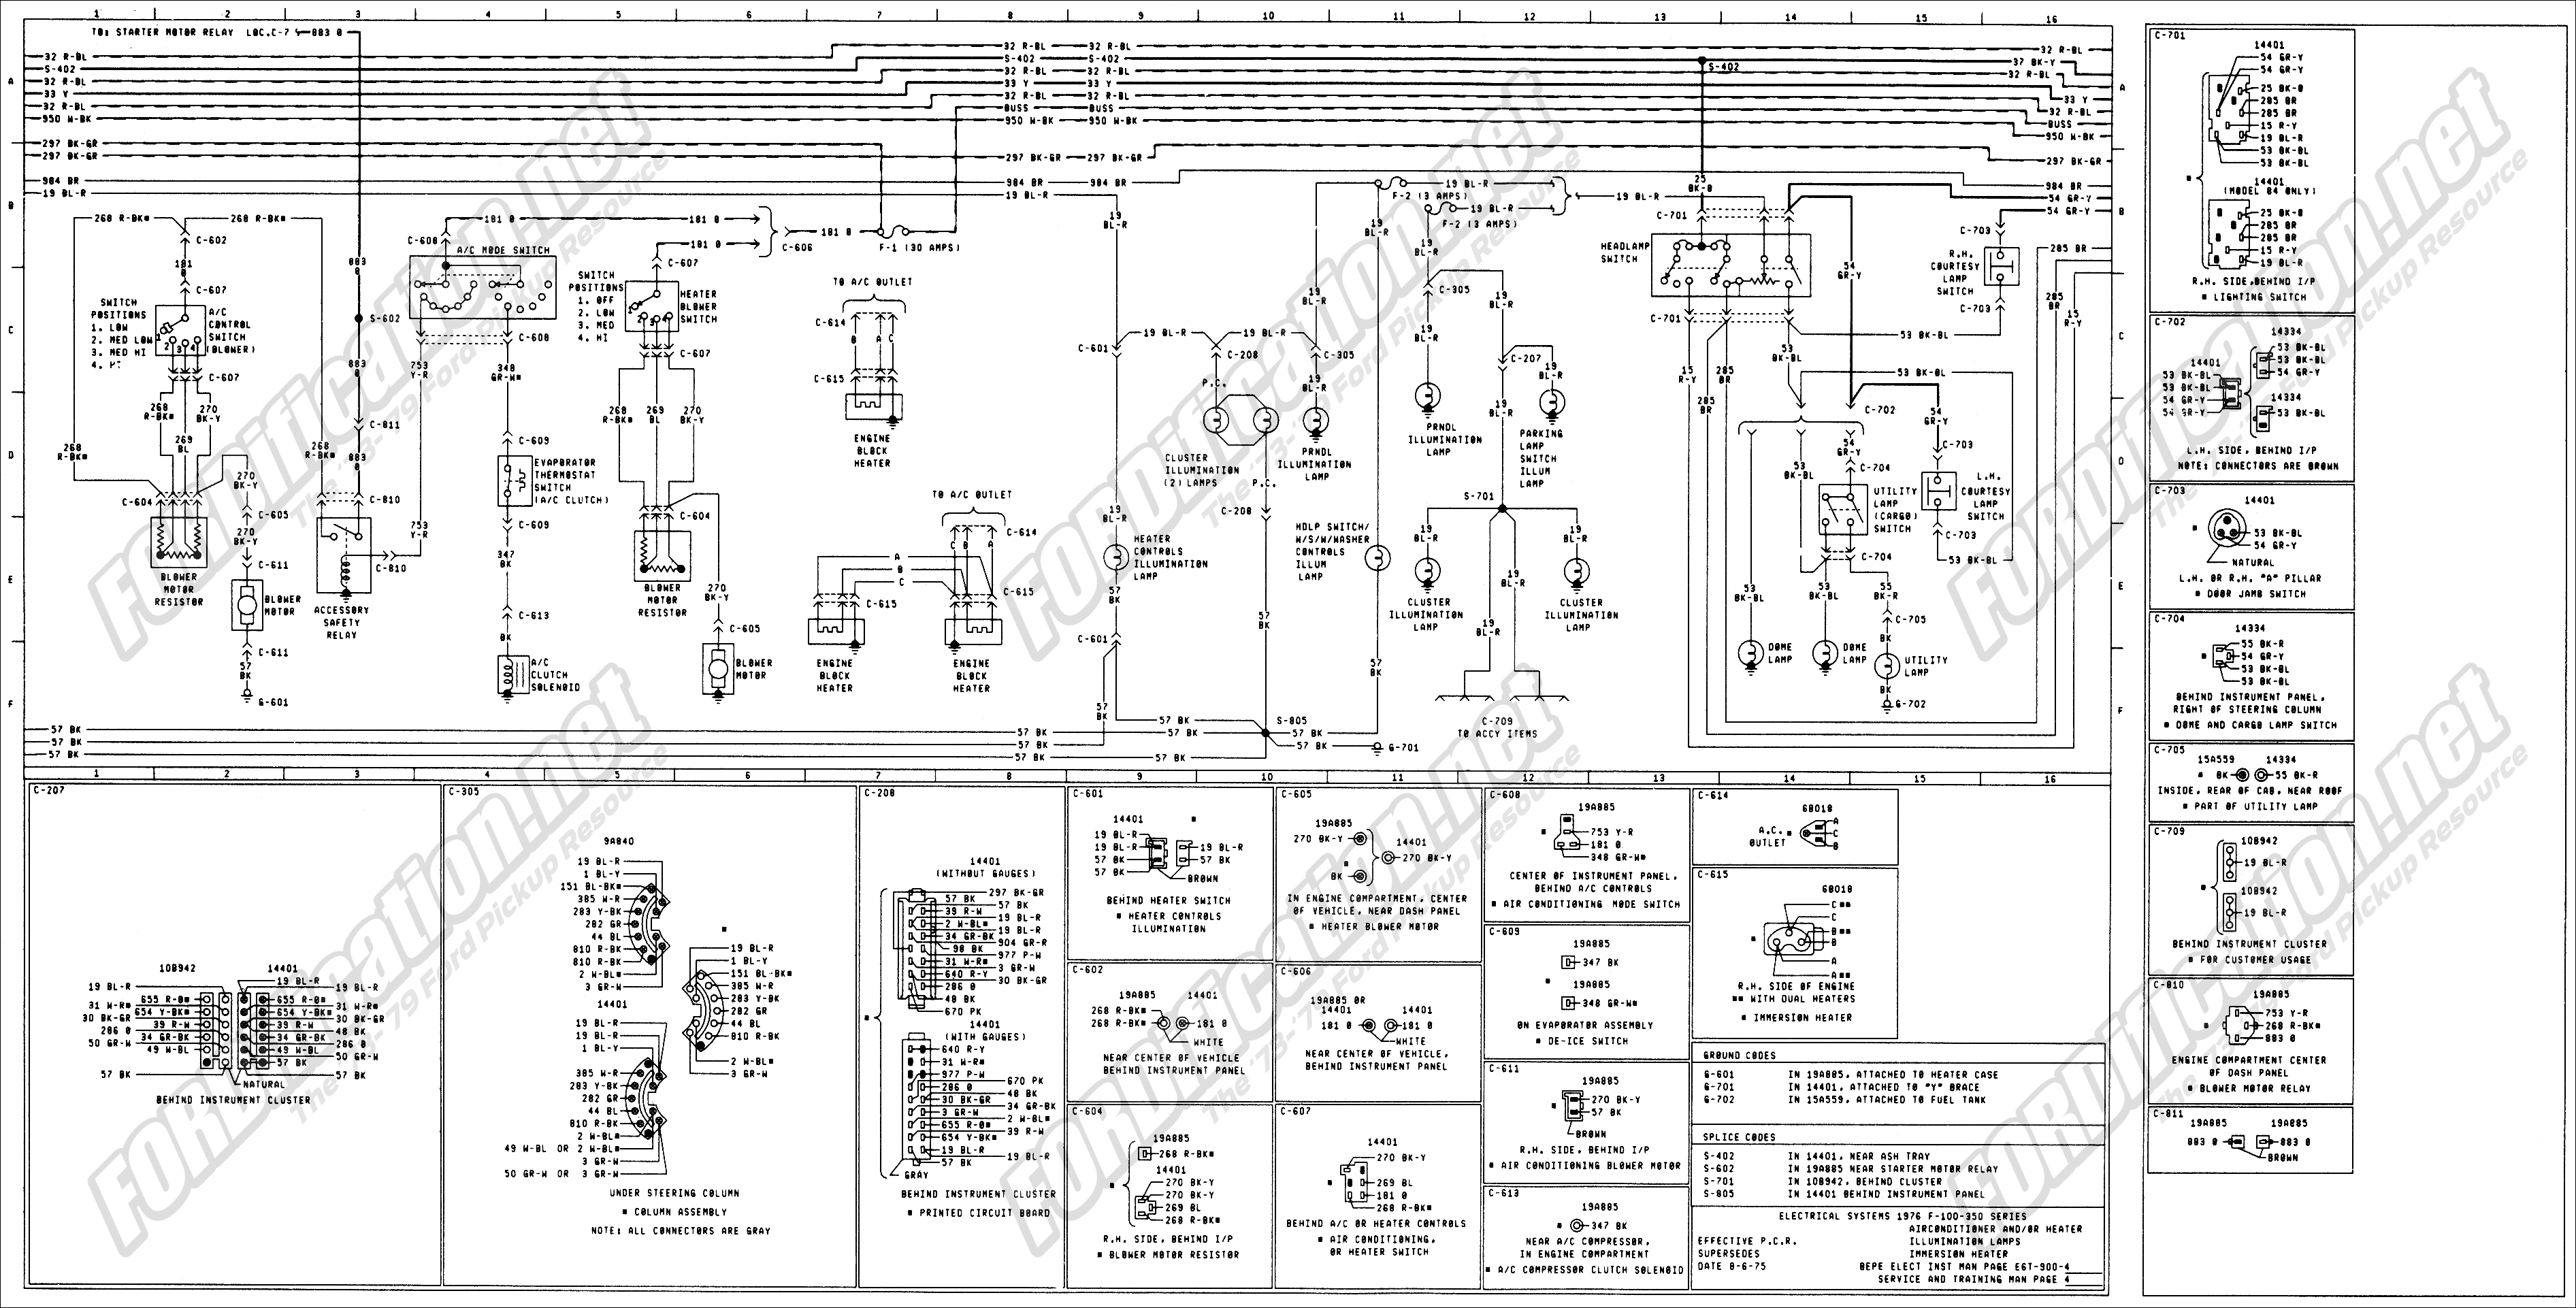 1979 F150 Wiring Diagram Starting Know About Alternator 90 15 6170 1973 Ford Truck Diagrams Schematics Fordification Net Rh 4x4